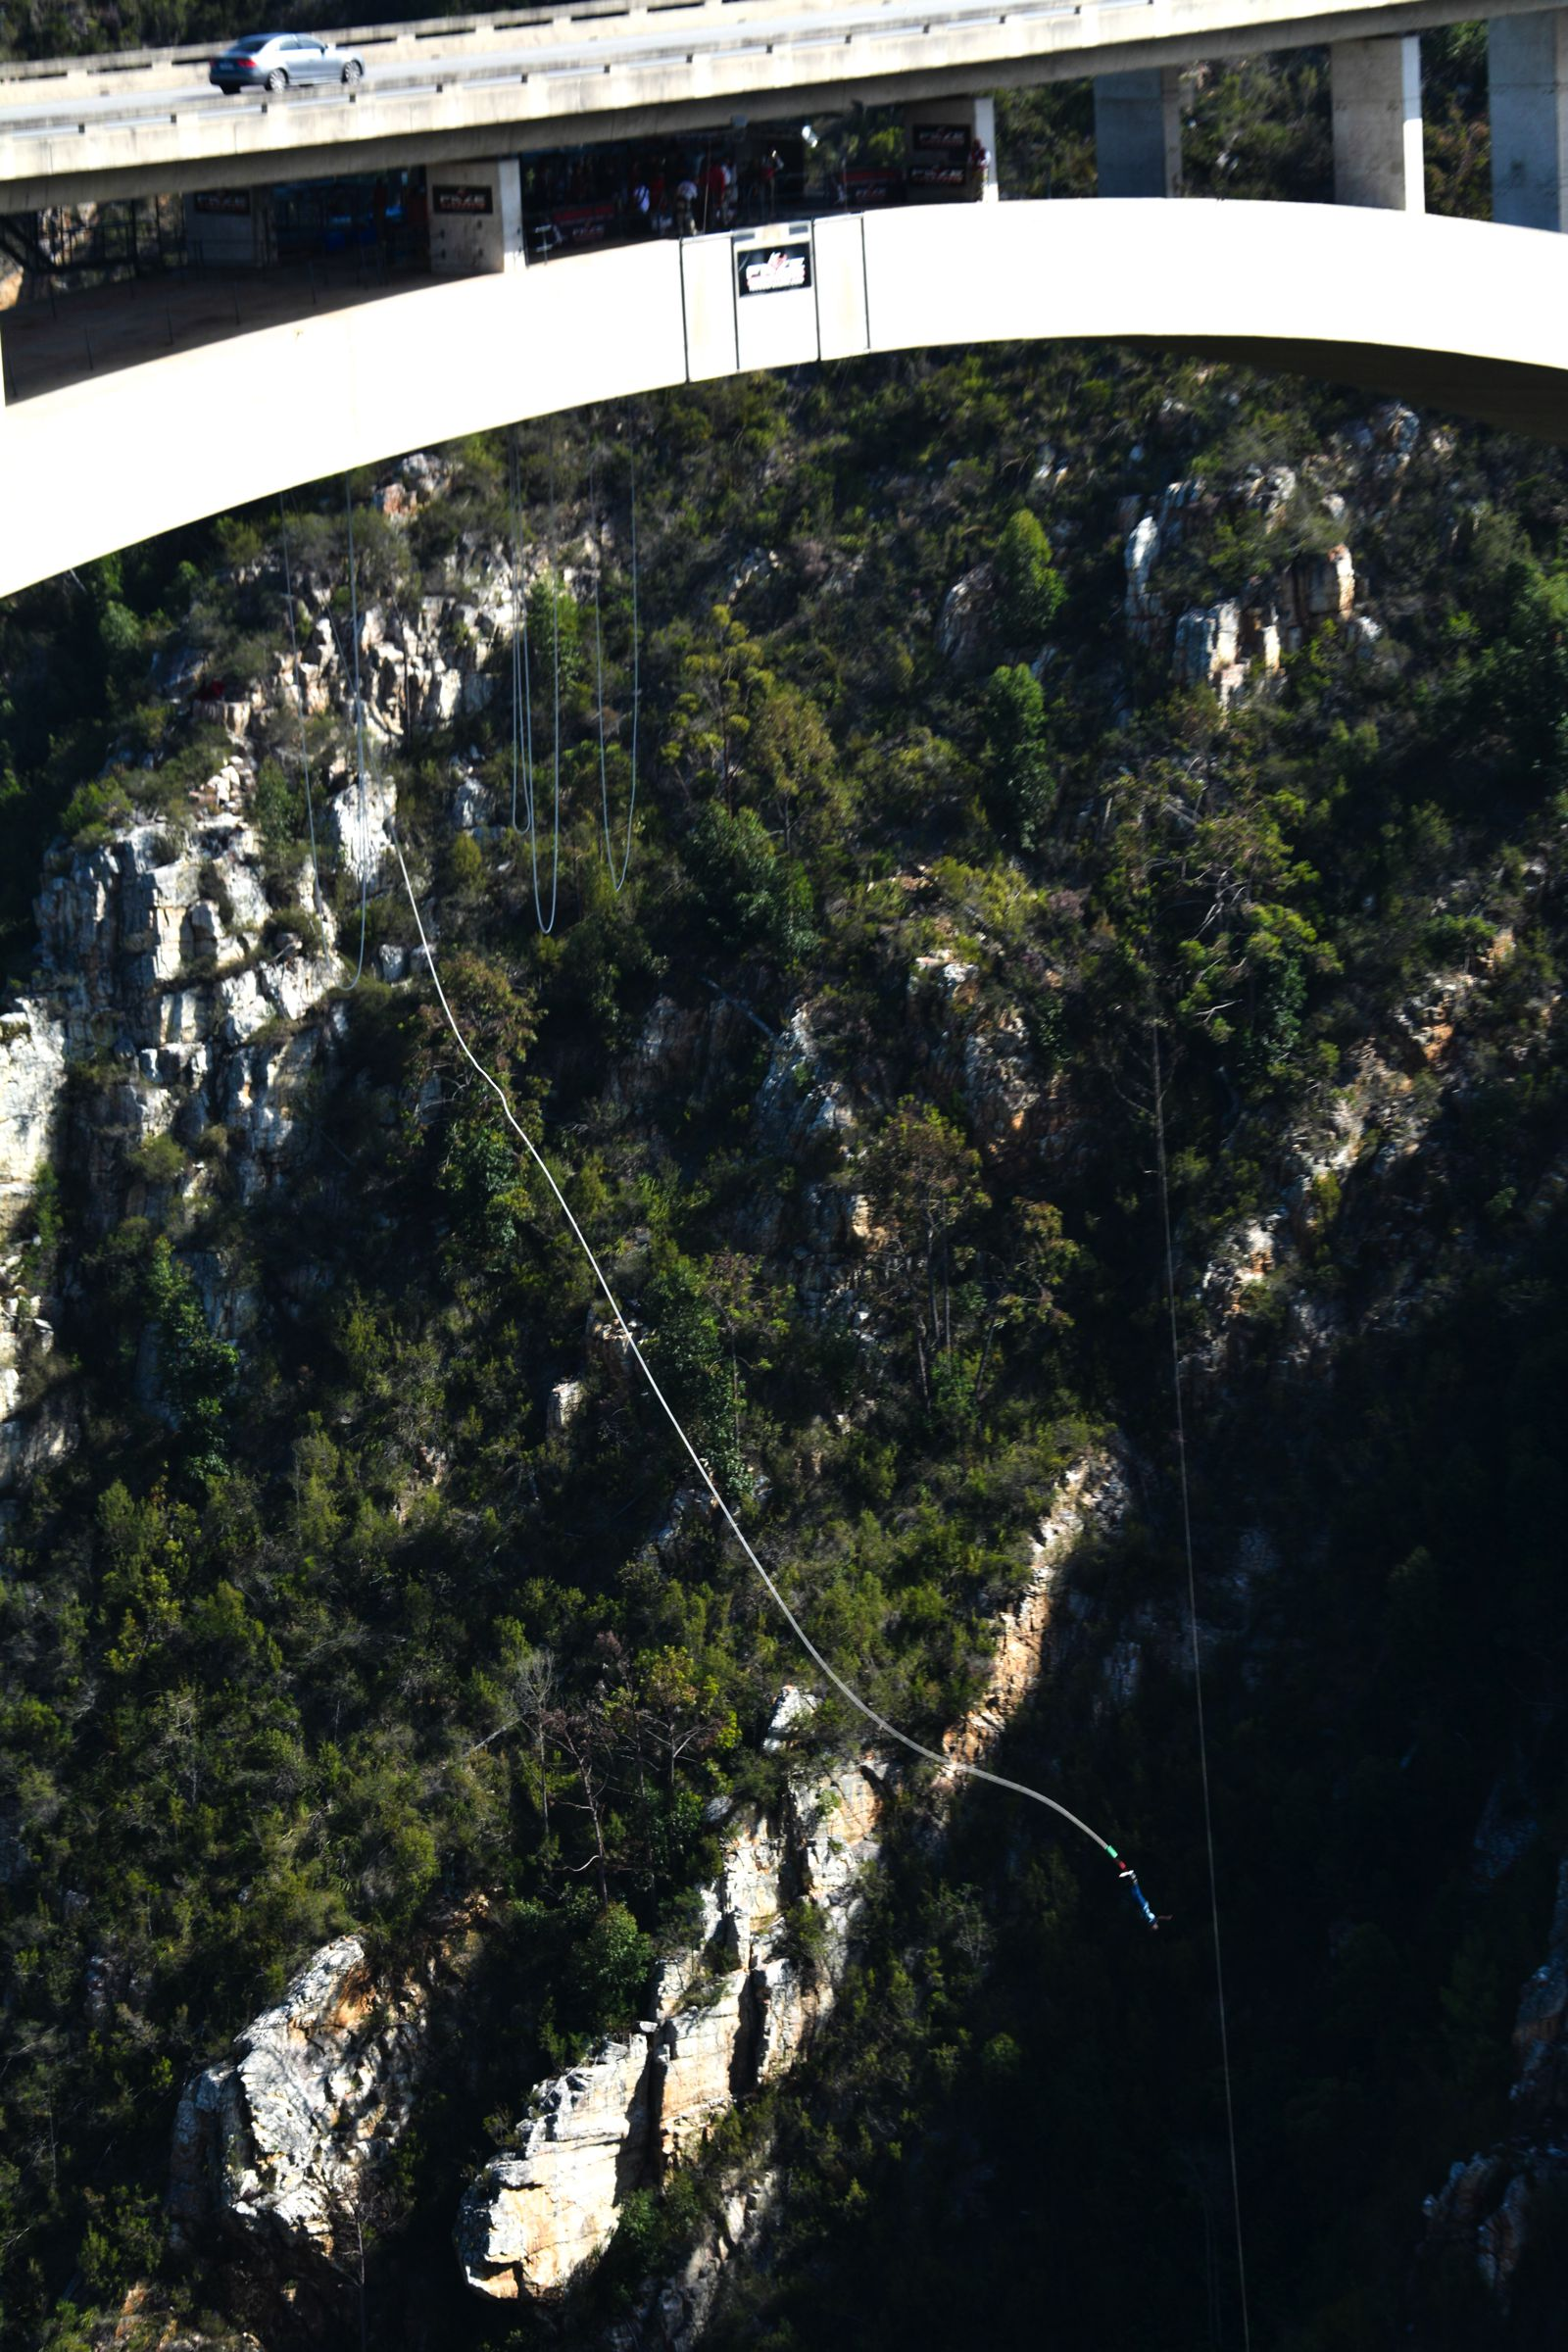 Eastern Cape Adventures In South Africa: Wines, 1,000 Year Old Trees And The Tallest Bungee In The World! (7)